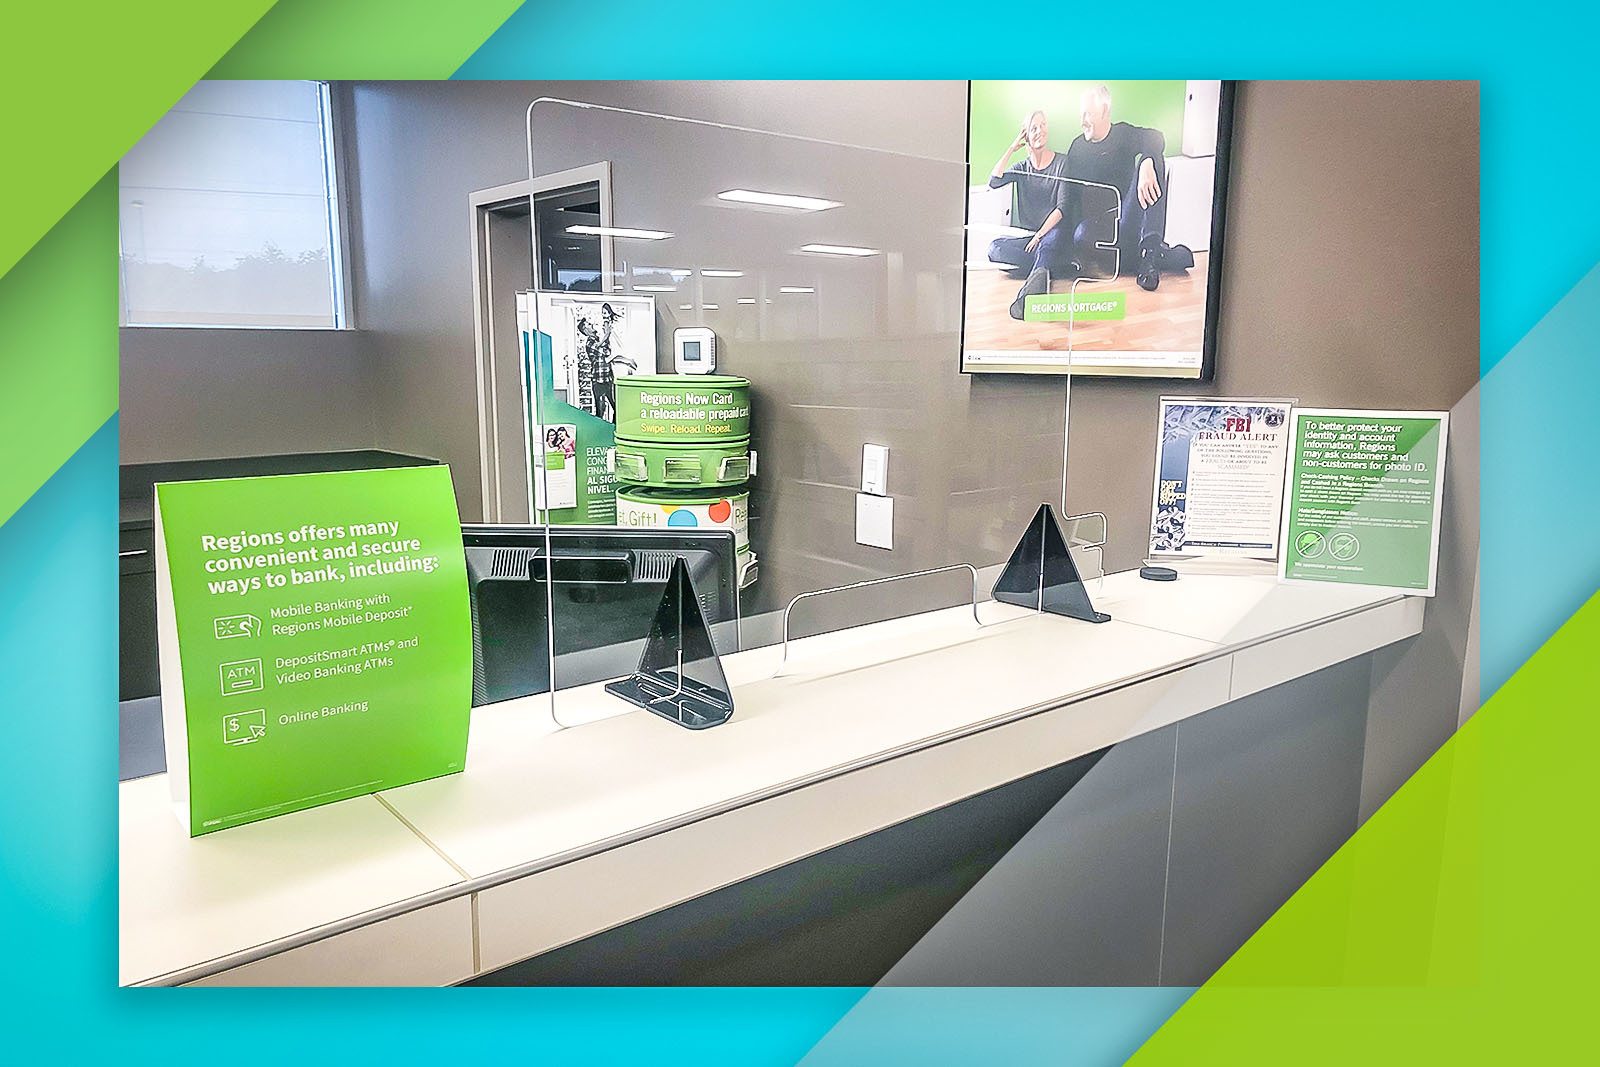 Protective shields have been installed at various teller lines and banker desks as one of many safety precautions.